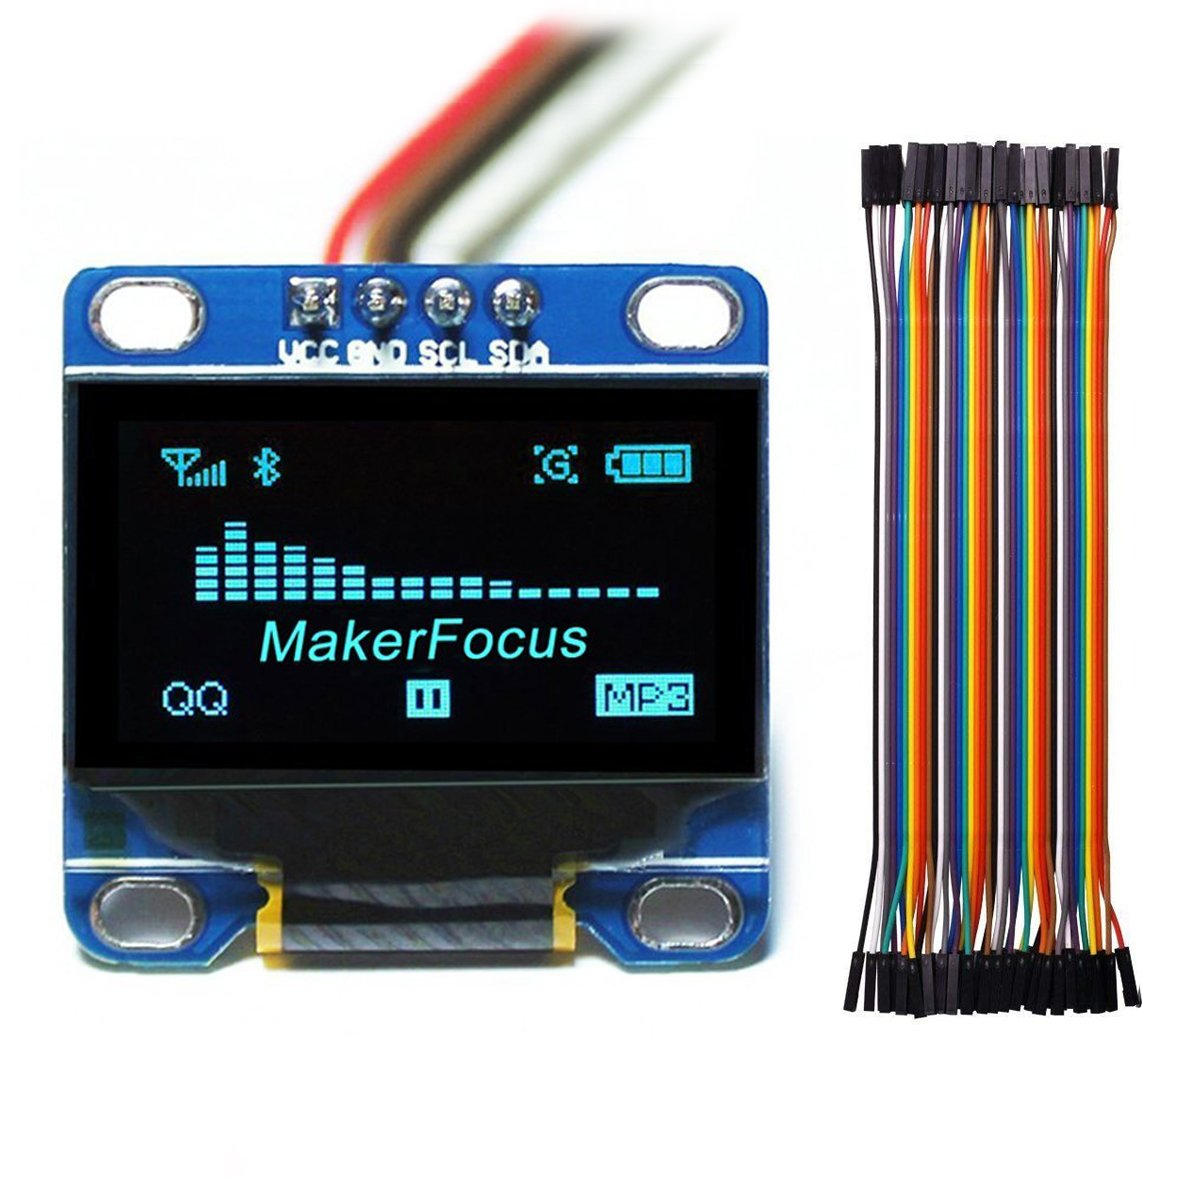 MakerFocus I2c OLED Display, 0 96 Inch IIC Serial LCD LED Module 128 64 for  Arduino with 40pcs Du-pont Wire 20CM 40-Pin Female to Female